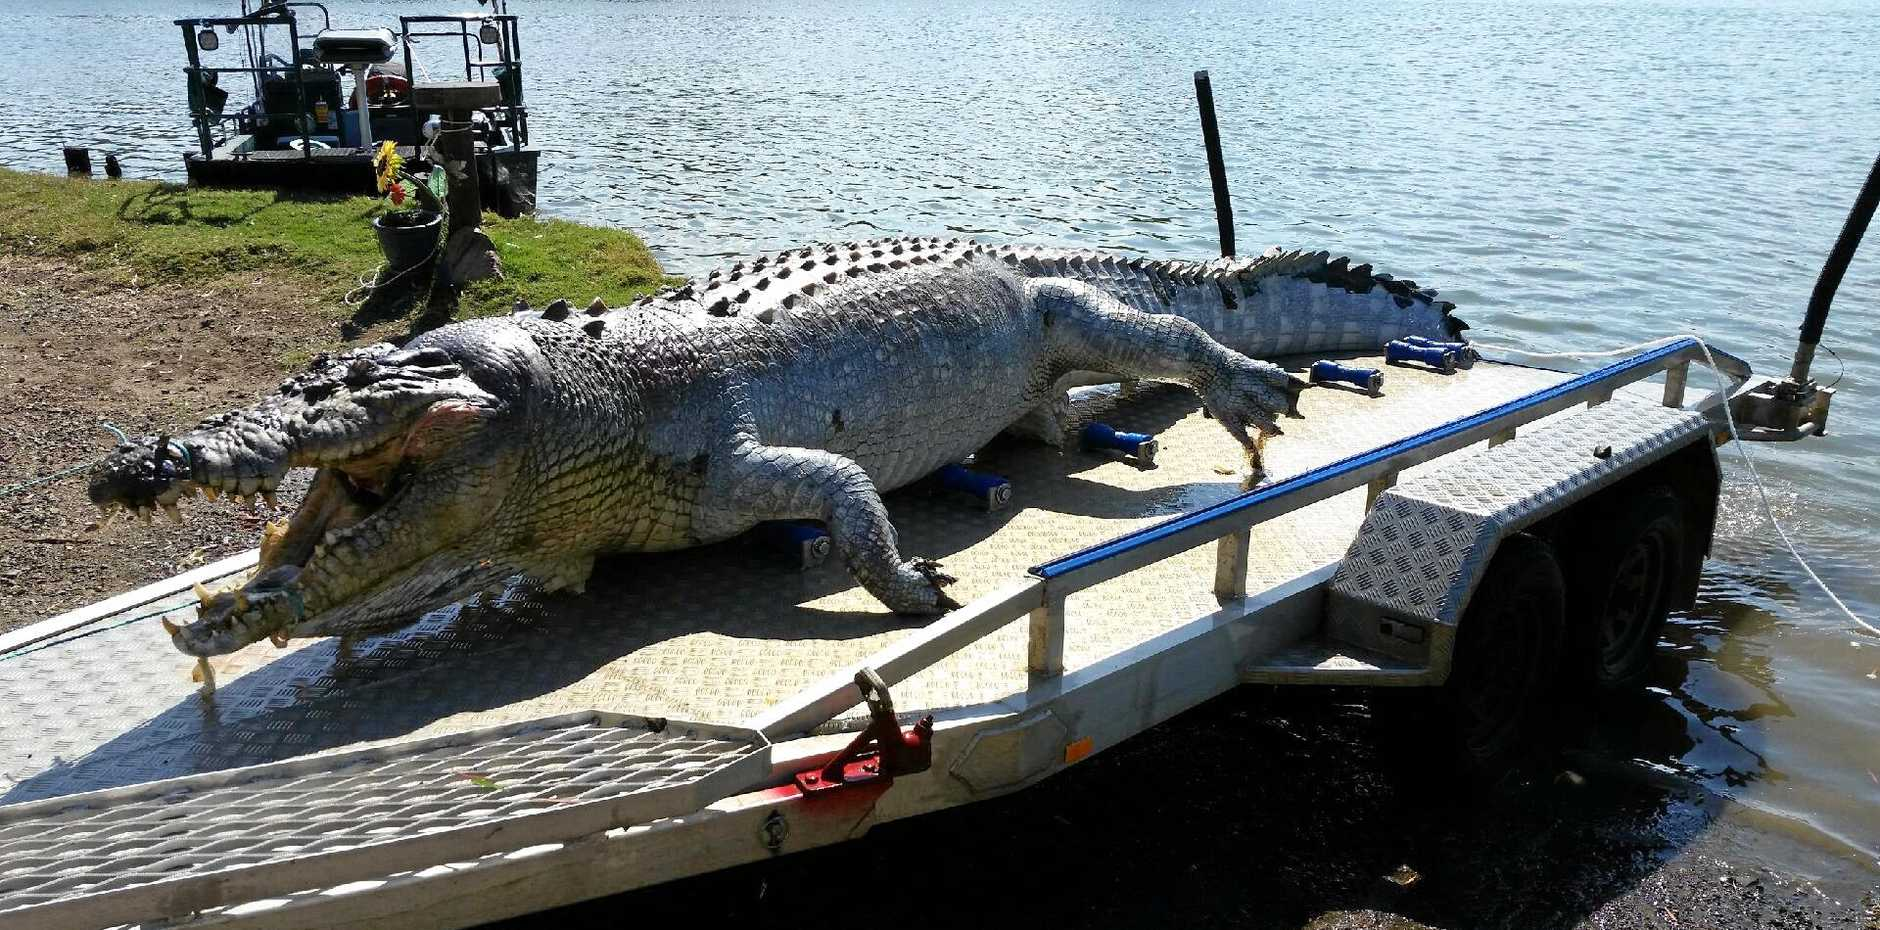 Images of a 5.2m crocodile found shot in the Fitzroy River, Rockhampton on Thursday, September 21. Police and the EHP are appealing for public assistance in their investigations to find the culprit.